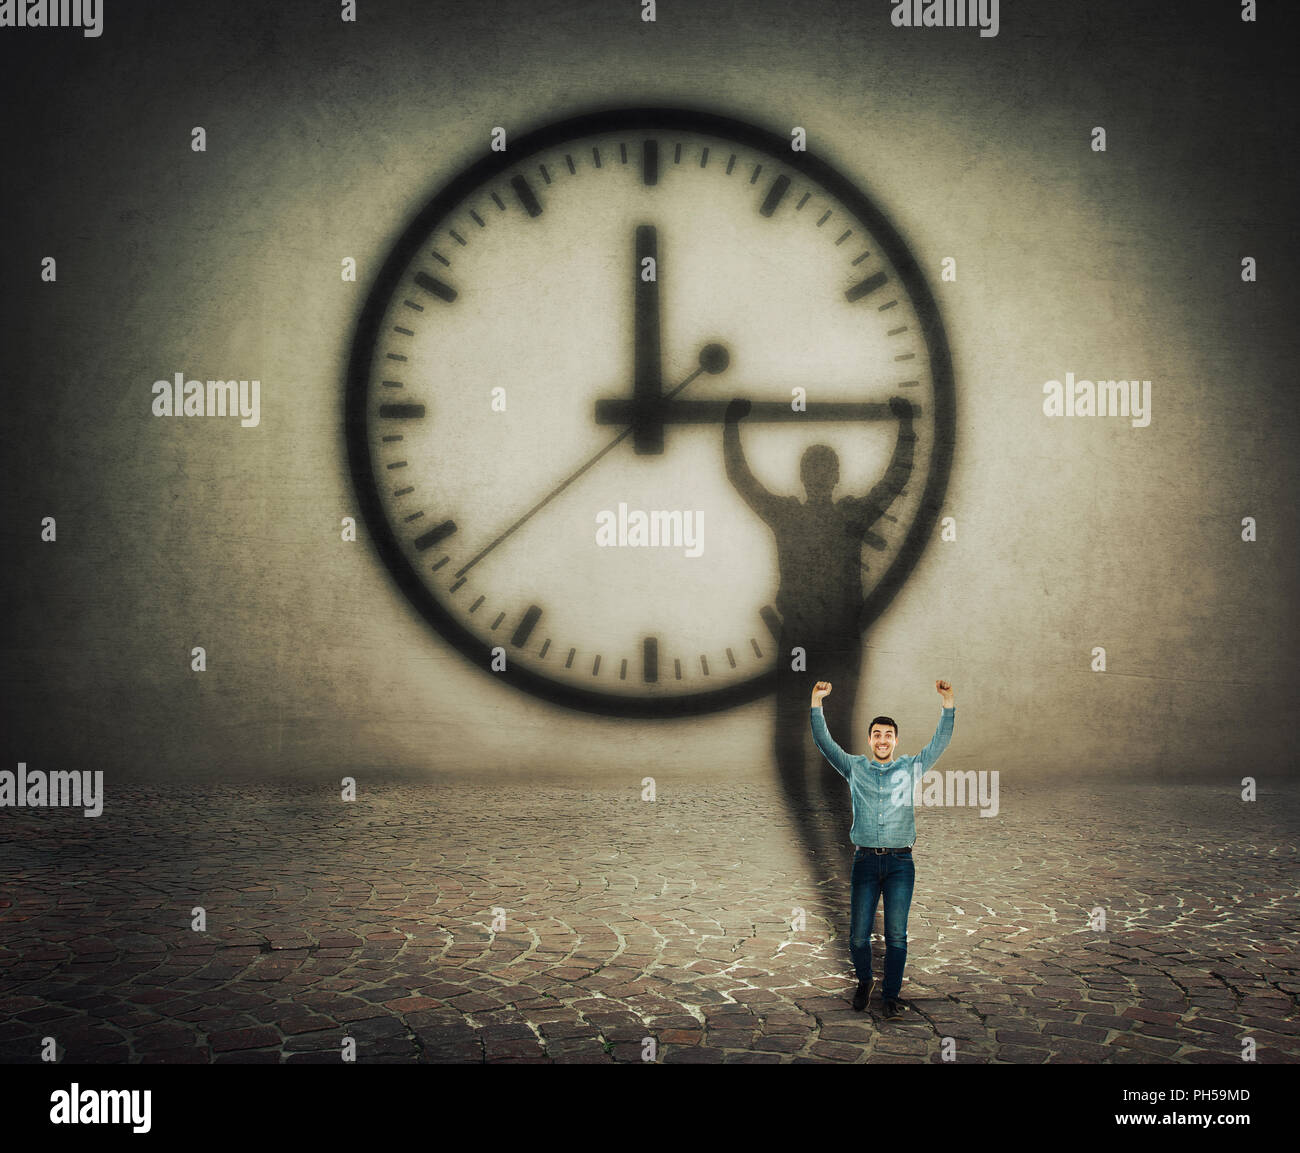 Surreal image of a businessman trying to stop the time. Casting a shadow with hands up holding the clock arrow. - Stock Image